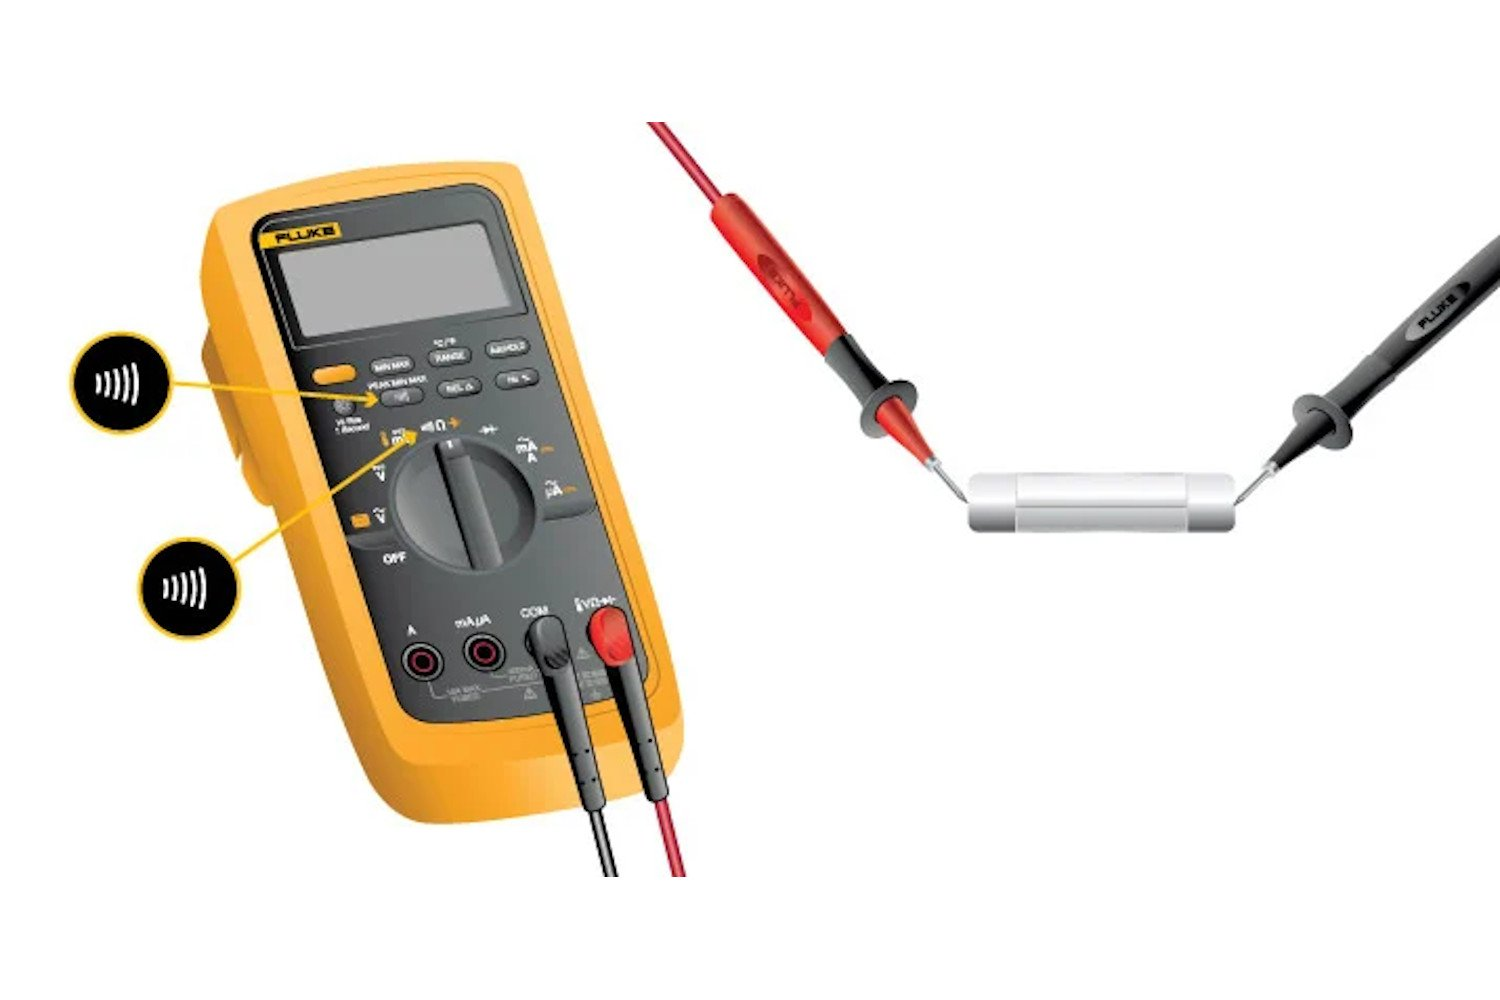 Steps for measuring continuity with a digital multimeter